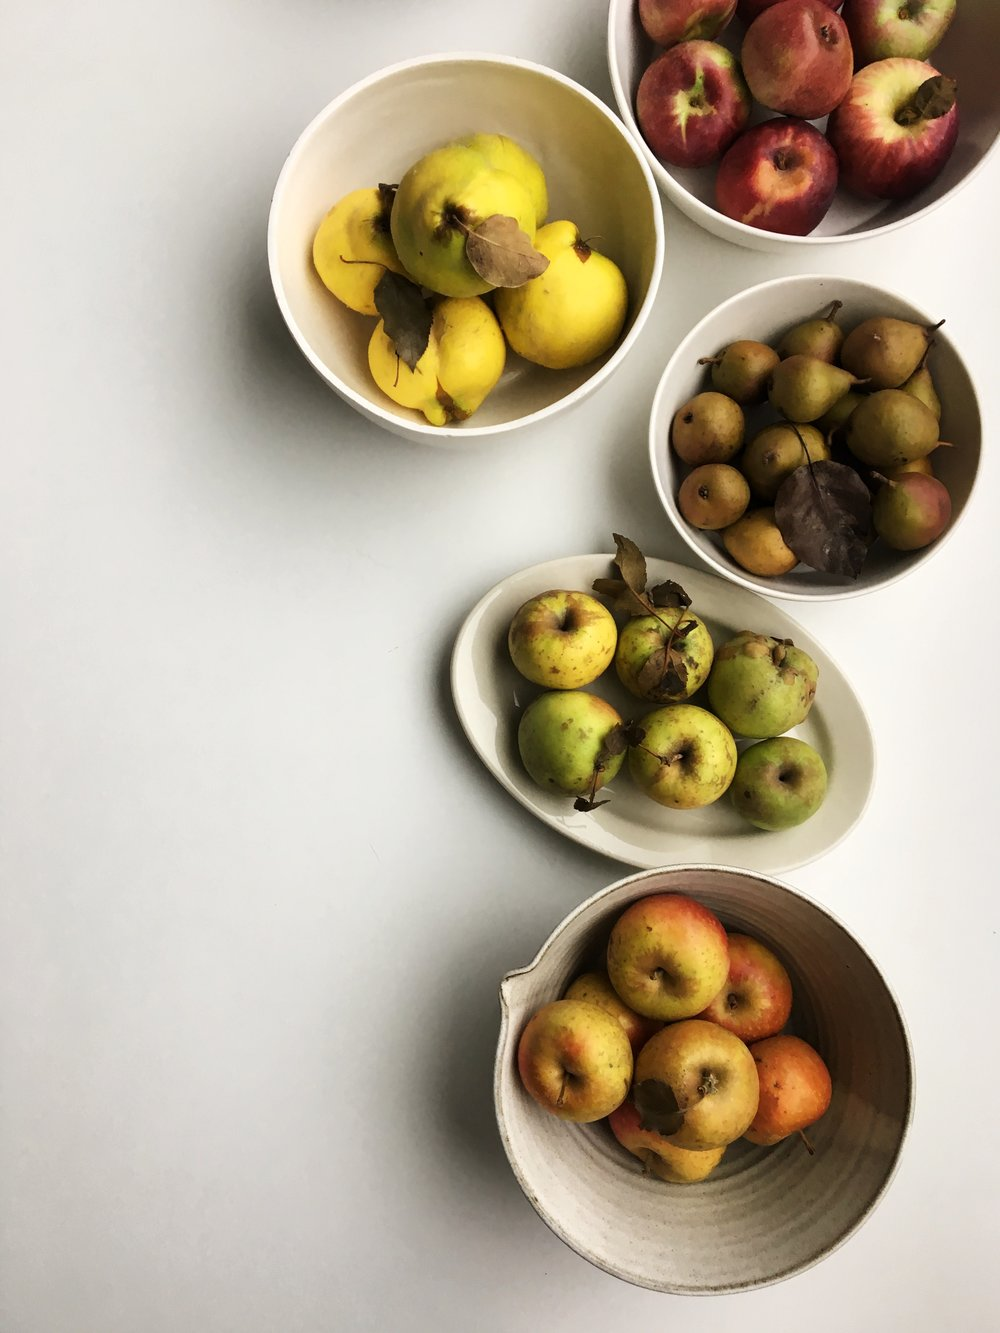 Fall fruits sourced from the Union Square Farmers Market. Apples, quince, and pears.